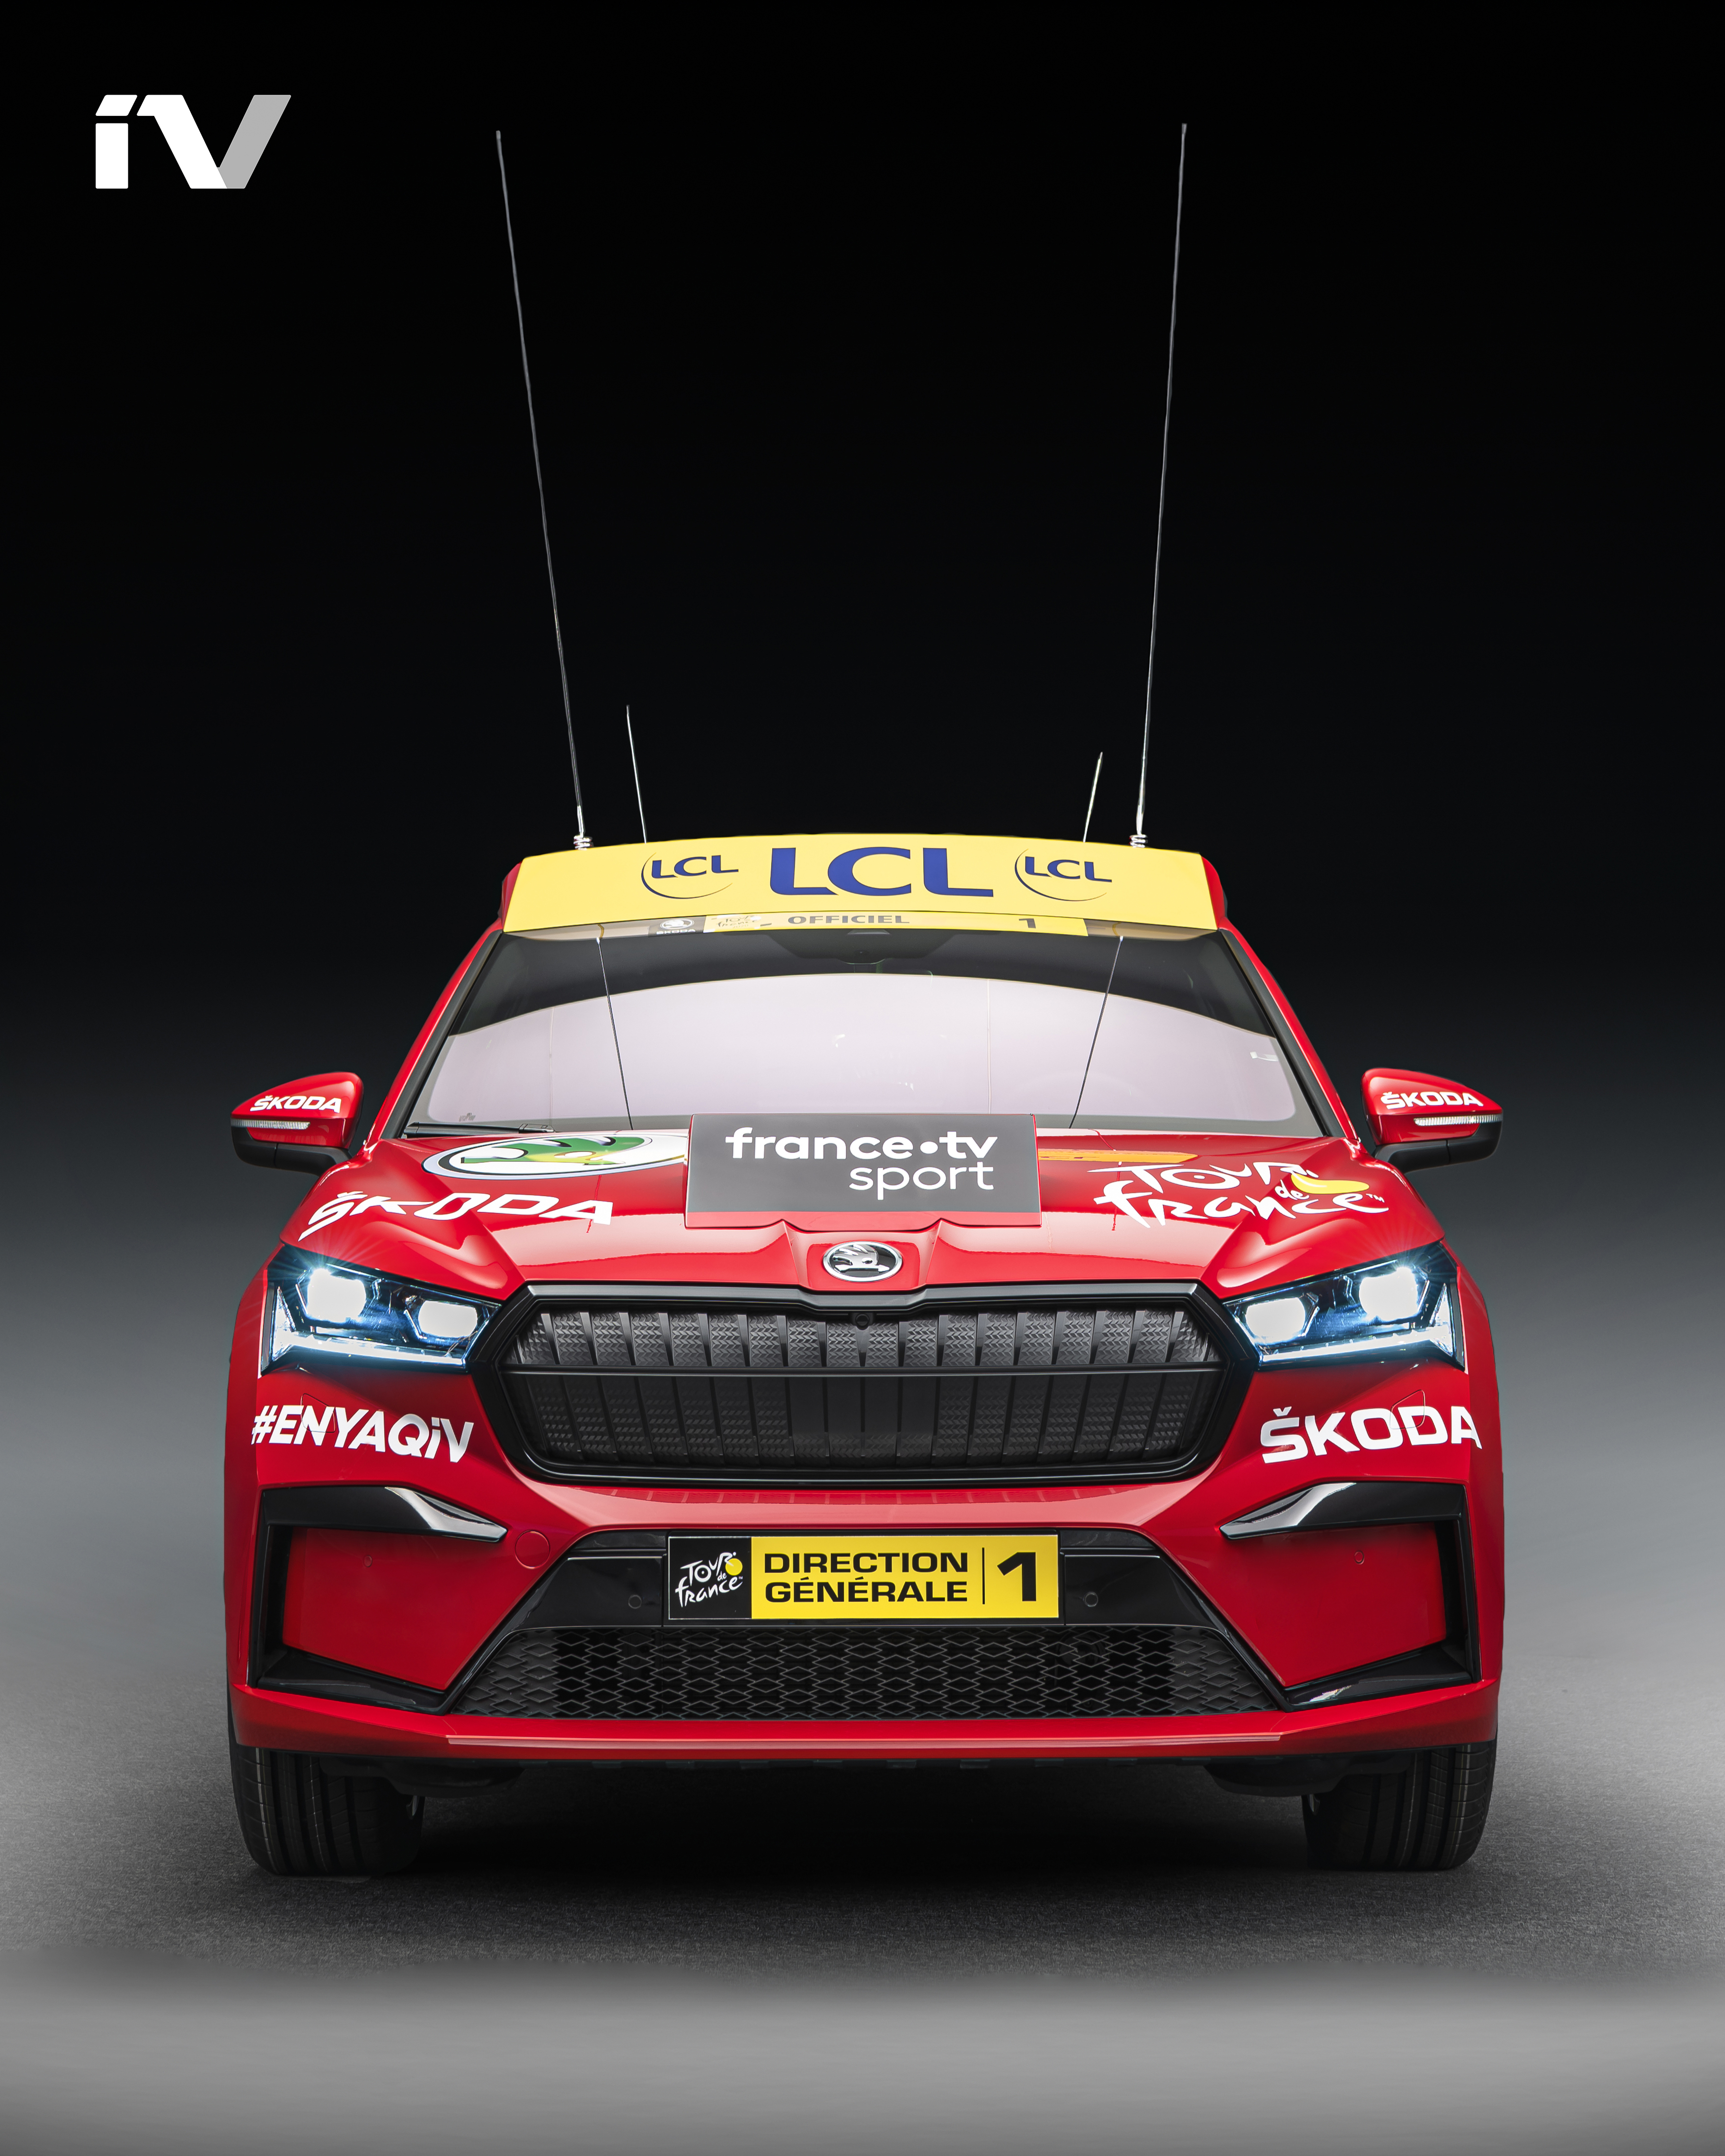 SKODA ENYAQ iV makes its debut as the lead vehicle in the Tour de France - Image 2